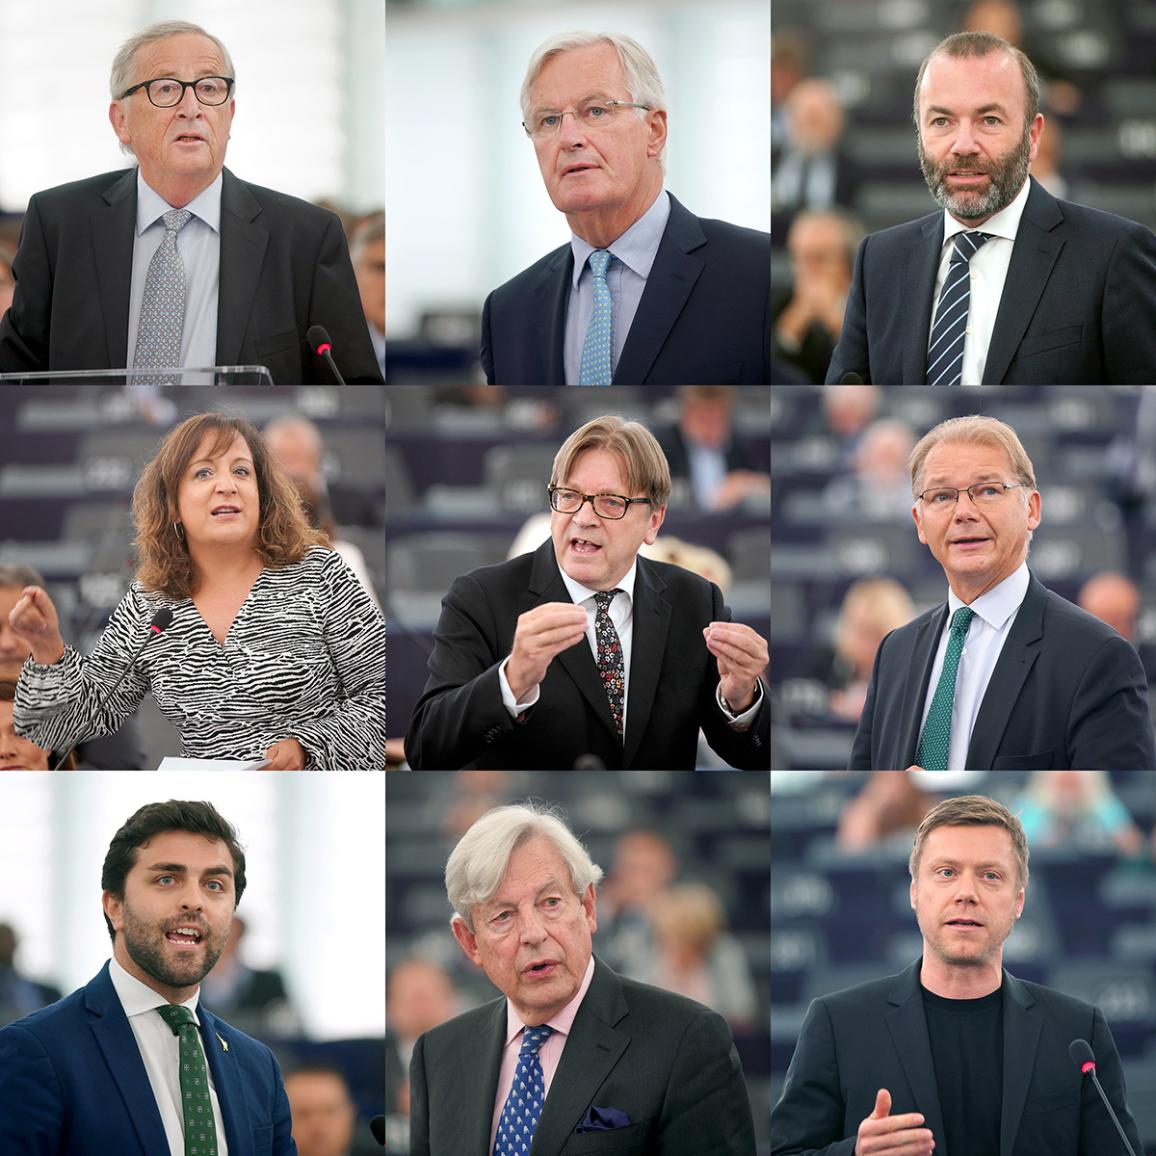 Speakers in the debate:Jean-Claude Juncker; Michel Barnier; Manfred Weber; Iratxe García Pérez; Guy Verhofstadt; Philippe Lamberts; Marco Zanni; Geoffrey Van Orden; Martin Schirdewan.